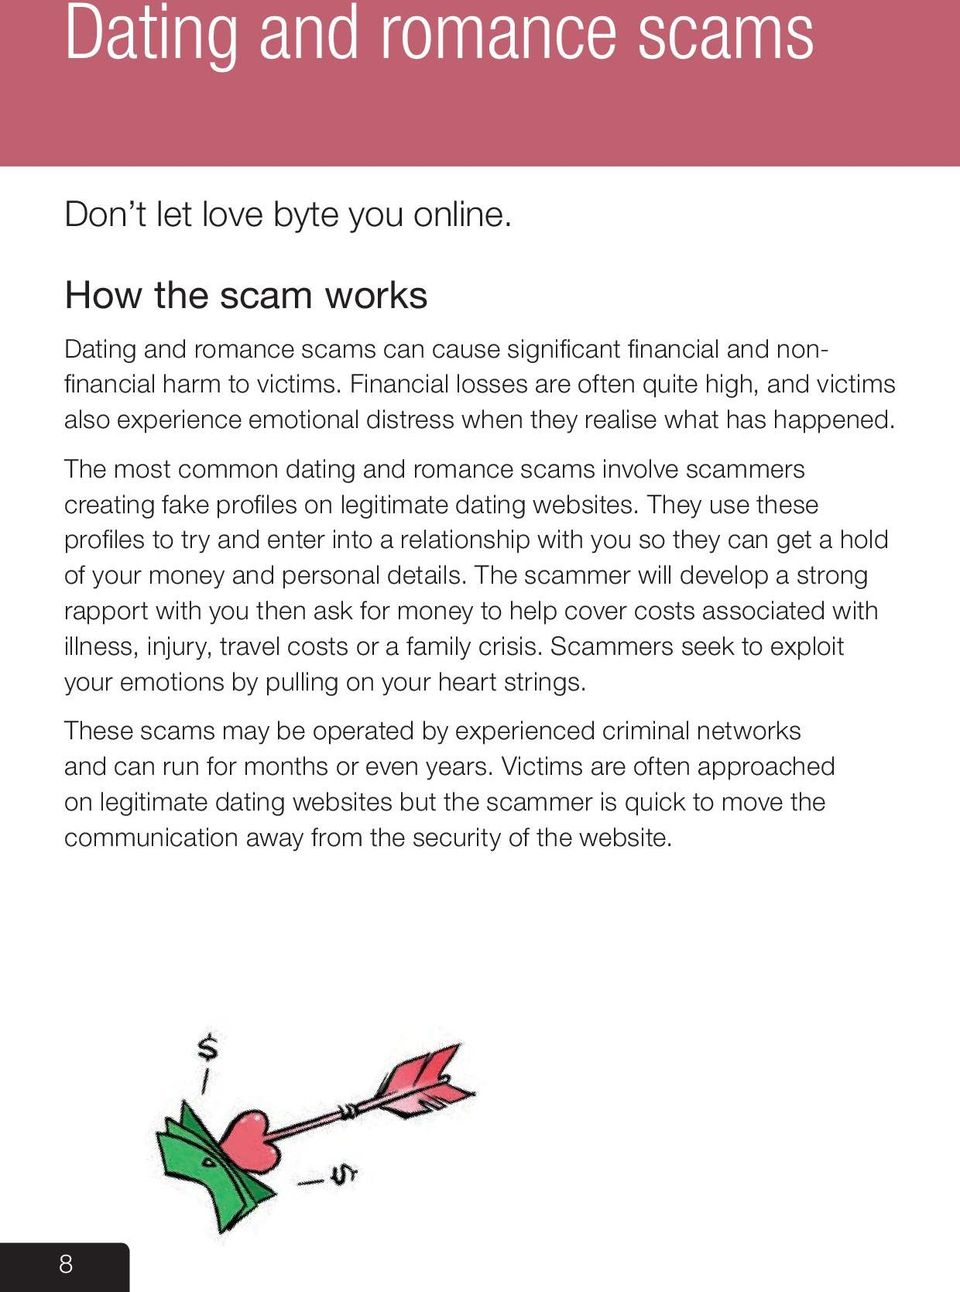 The most common dating and romance scams involve scammers creating fake profiles on legitimate dating websites.